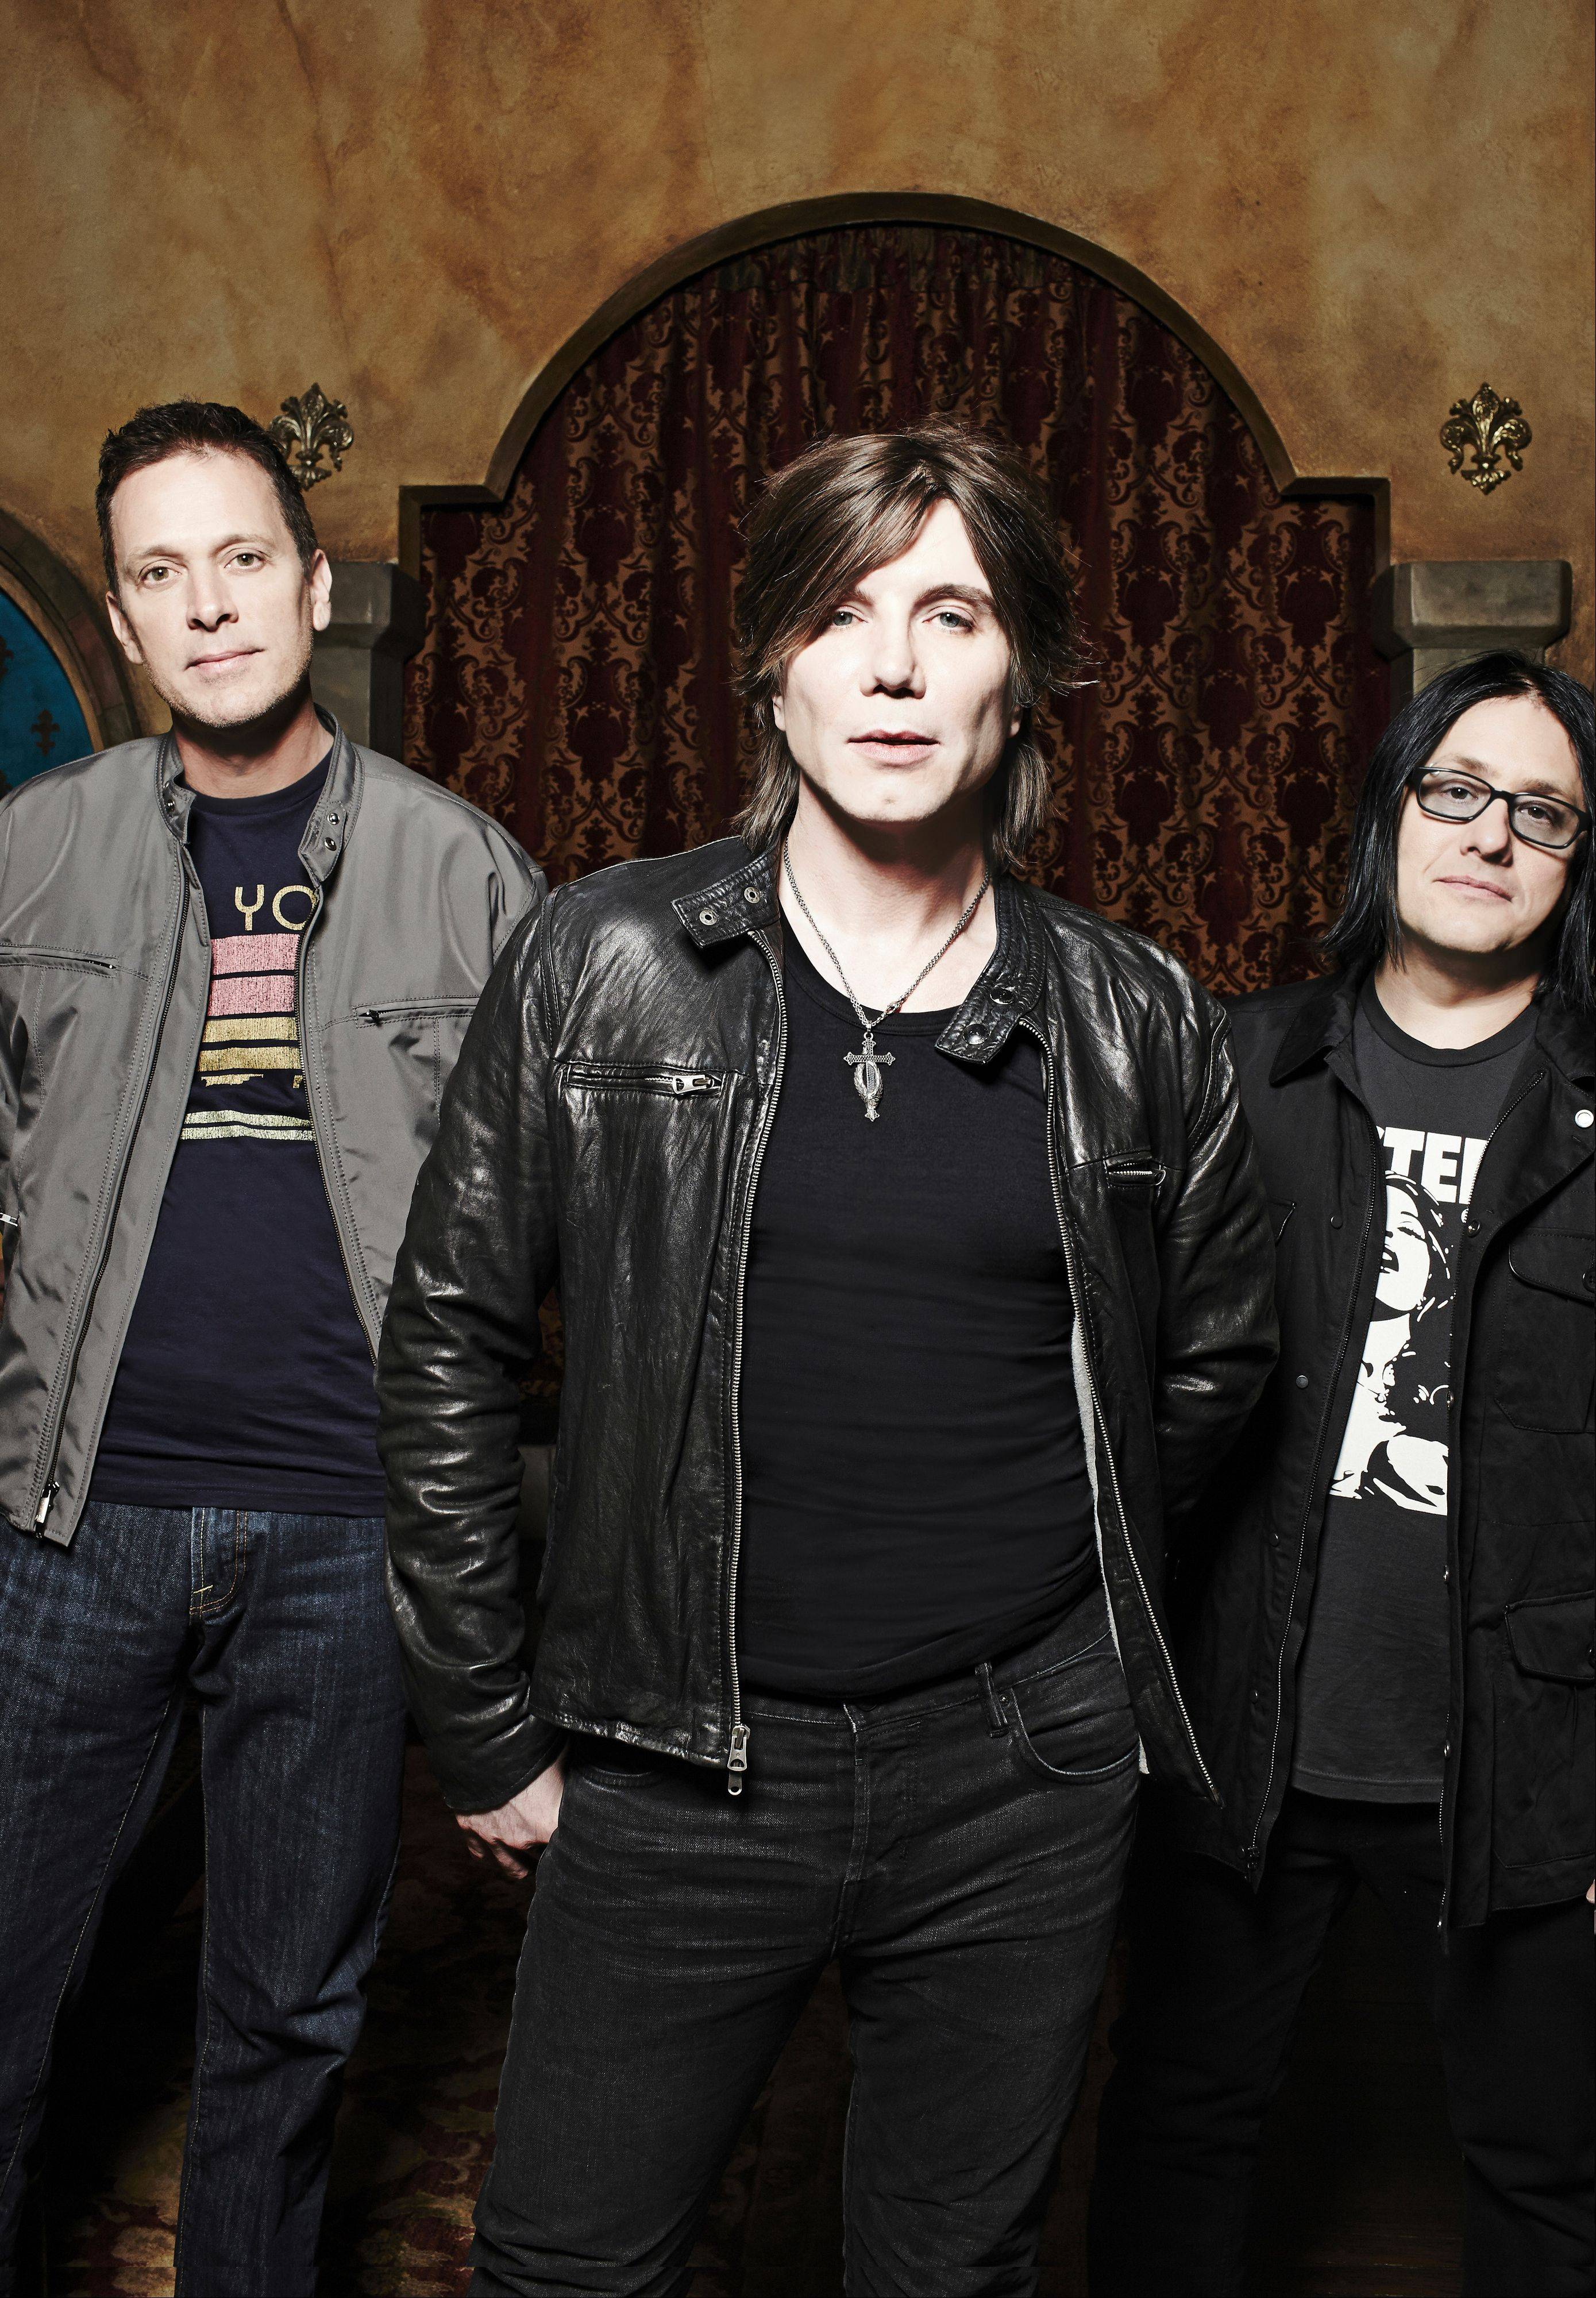 The Goo Goo Dolls play Saturday at Last Fling in Naperville.